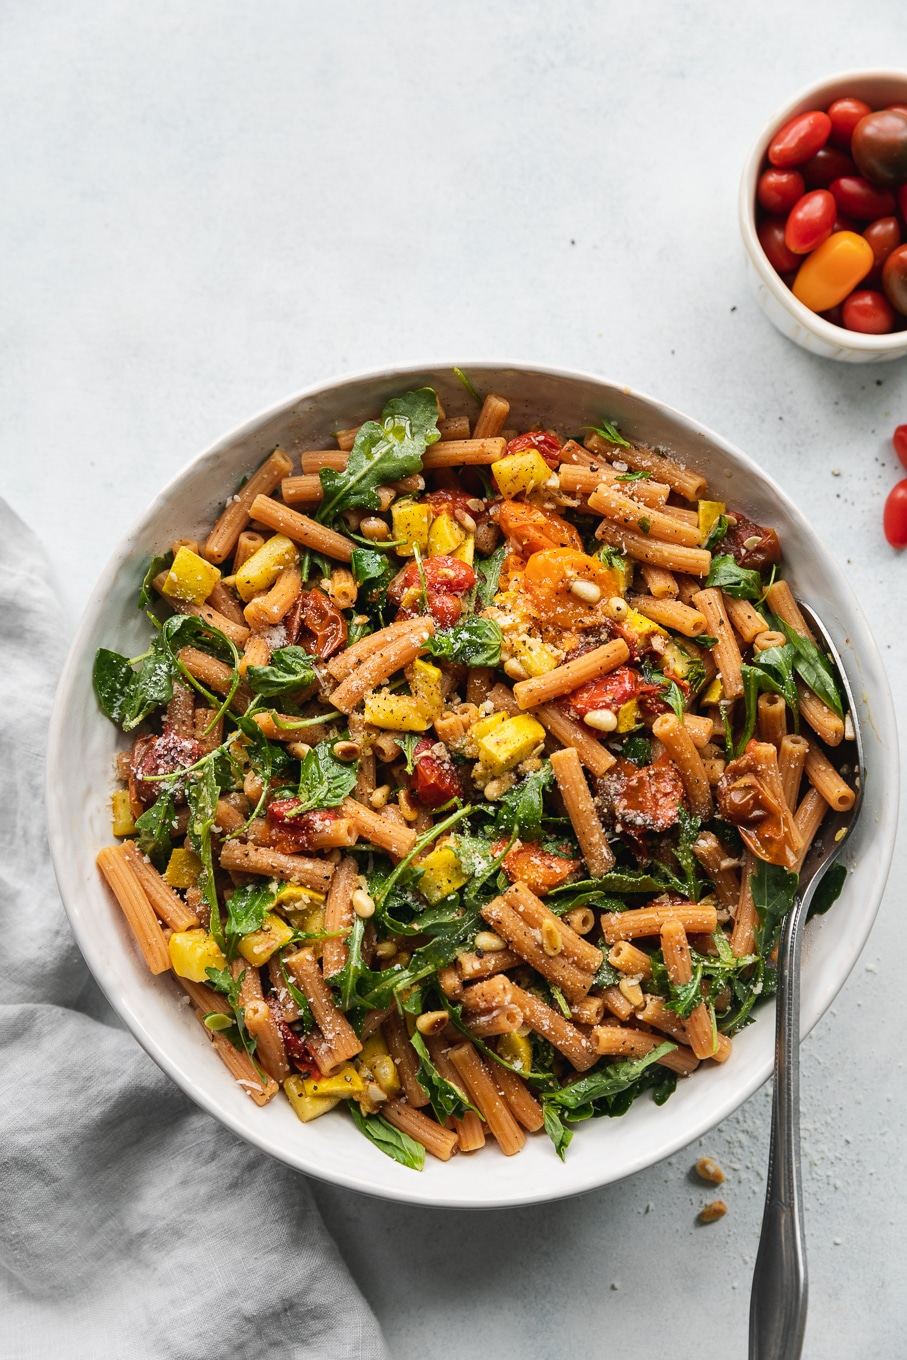 Overhead shot of a bowl of pasta filled with roasted tomatoes, summer squash, arugula, and parmesan cheese with a large silver utensil in the bowl